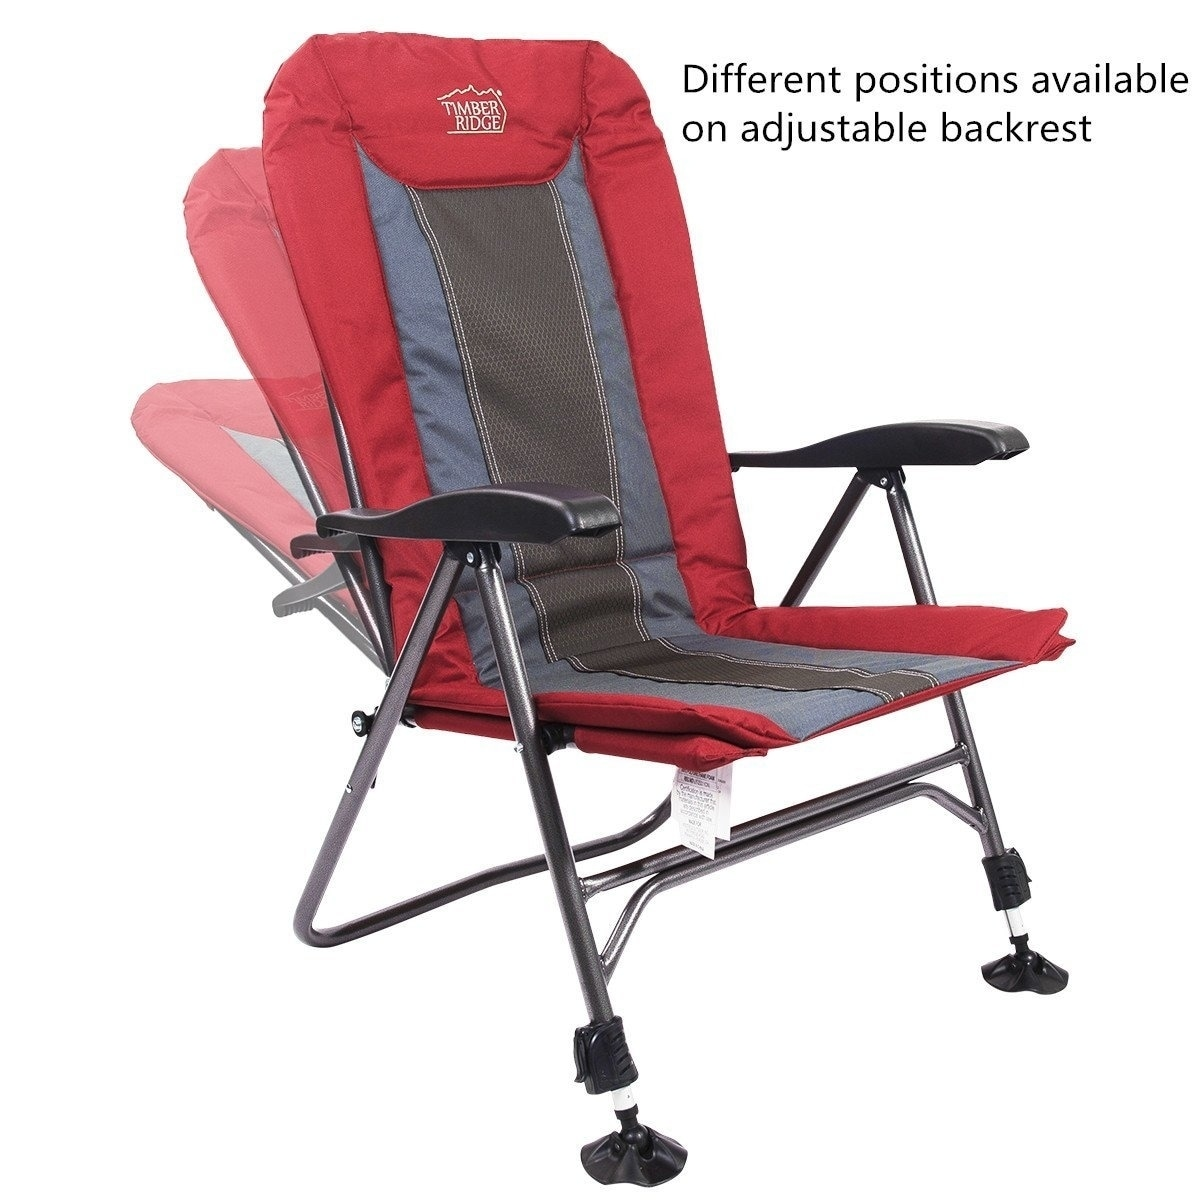 Camping Chair Folding Heavy Duty With Adjustable Reclining Padded Back And Legs Supports 300lbs Armrest Outdoor